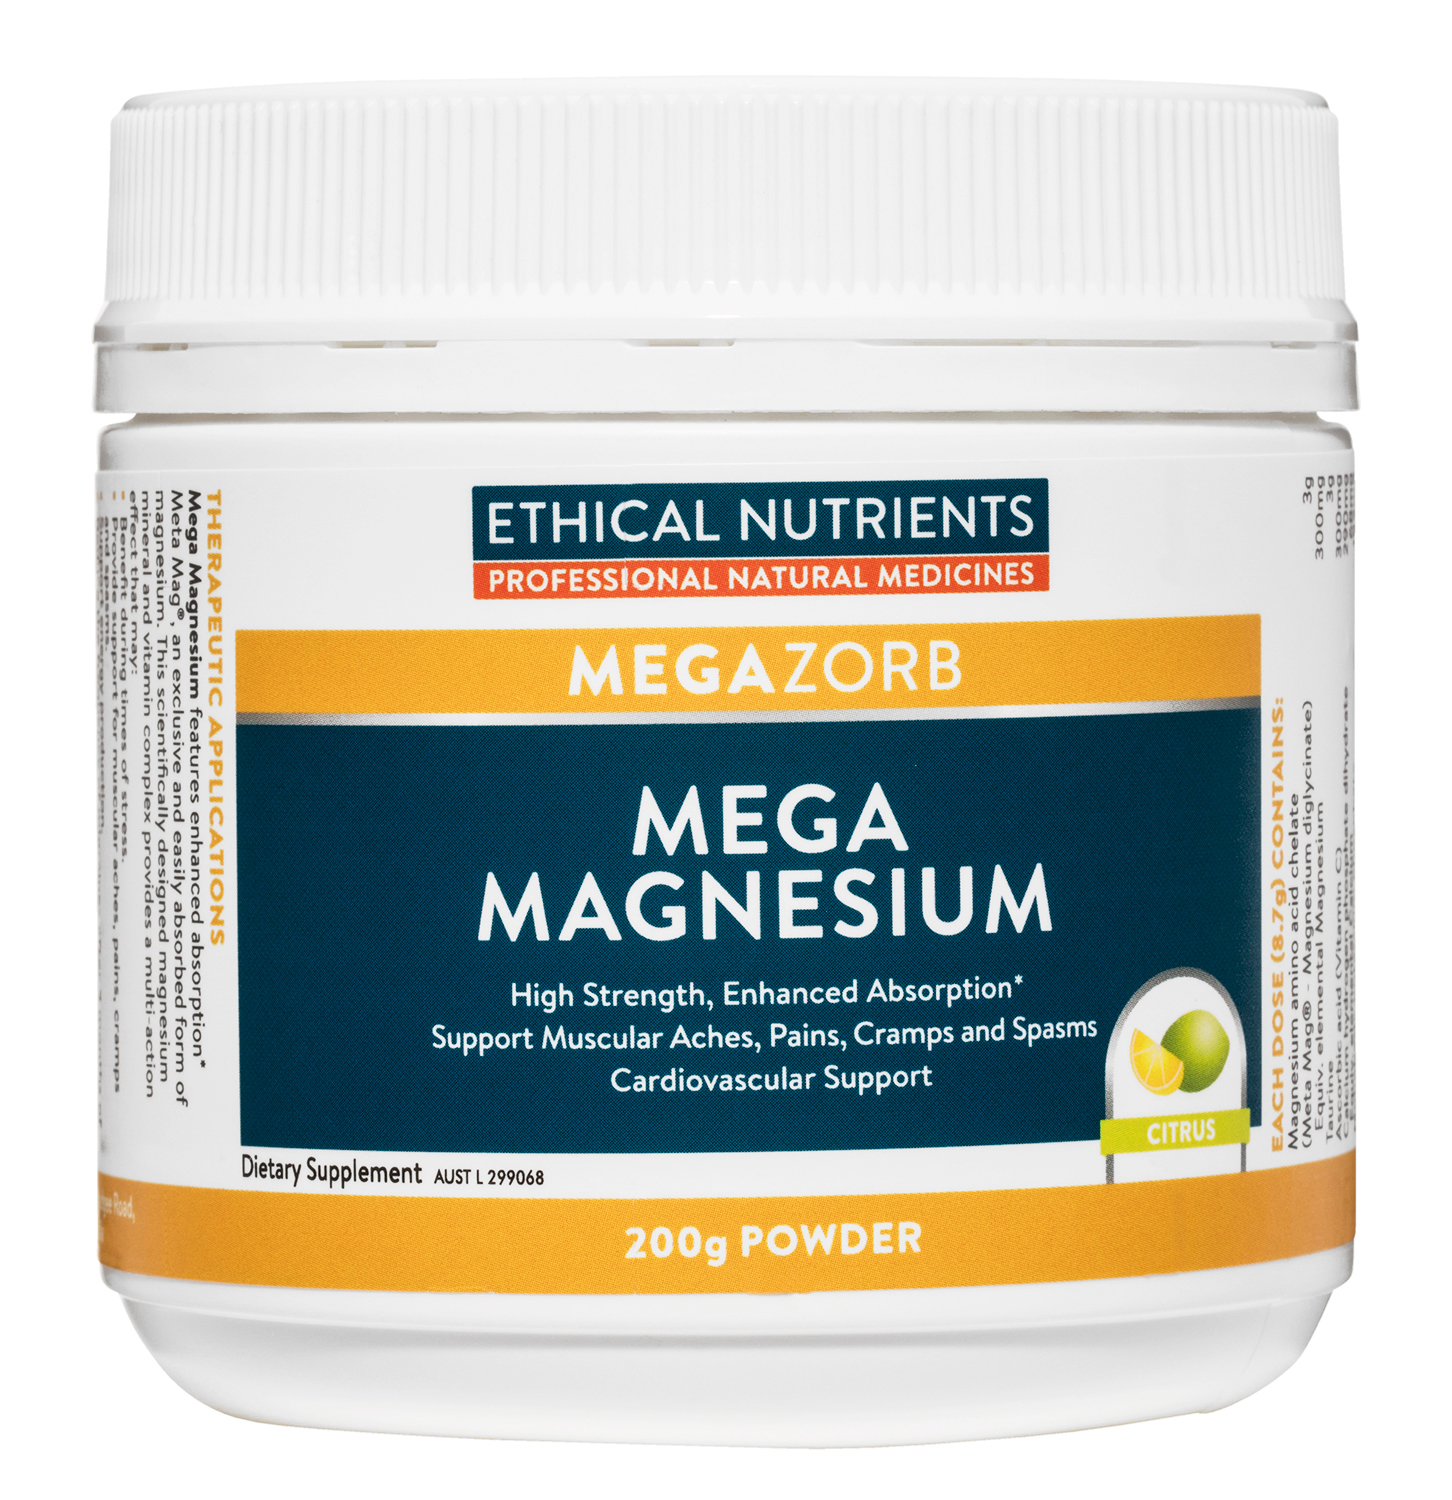 Ethical Nutrients Mega Magnesium Powder 200g Citrus Flavour